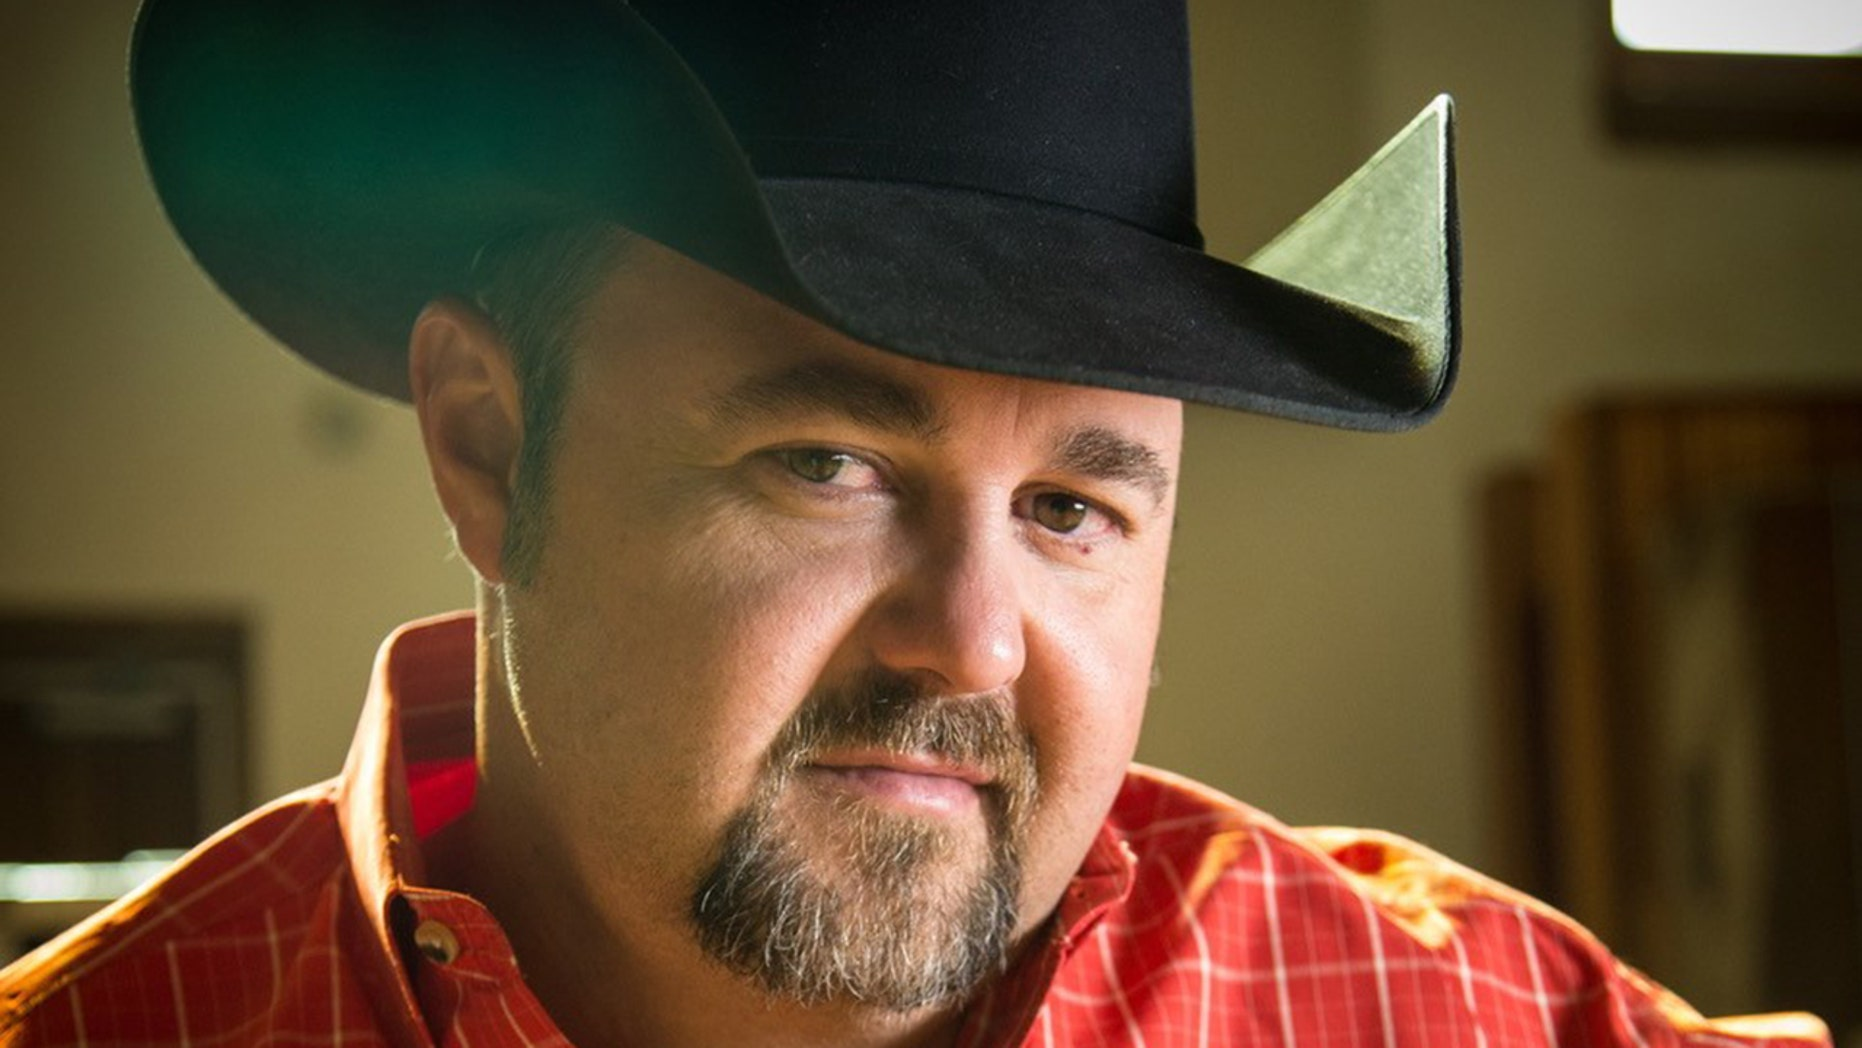 Country singer Daryle Singletary died suddenly on Monday at the age of 46.